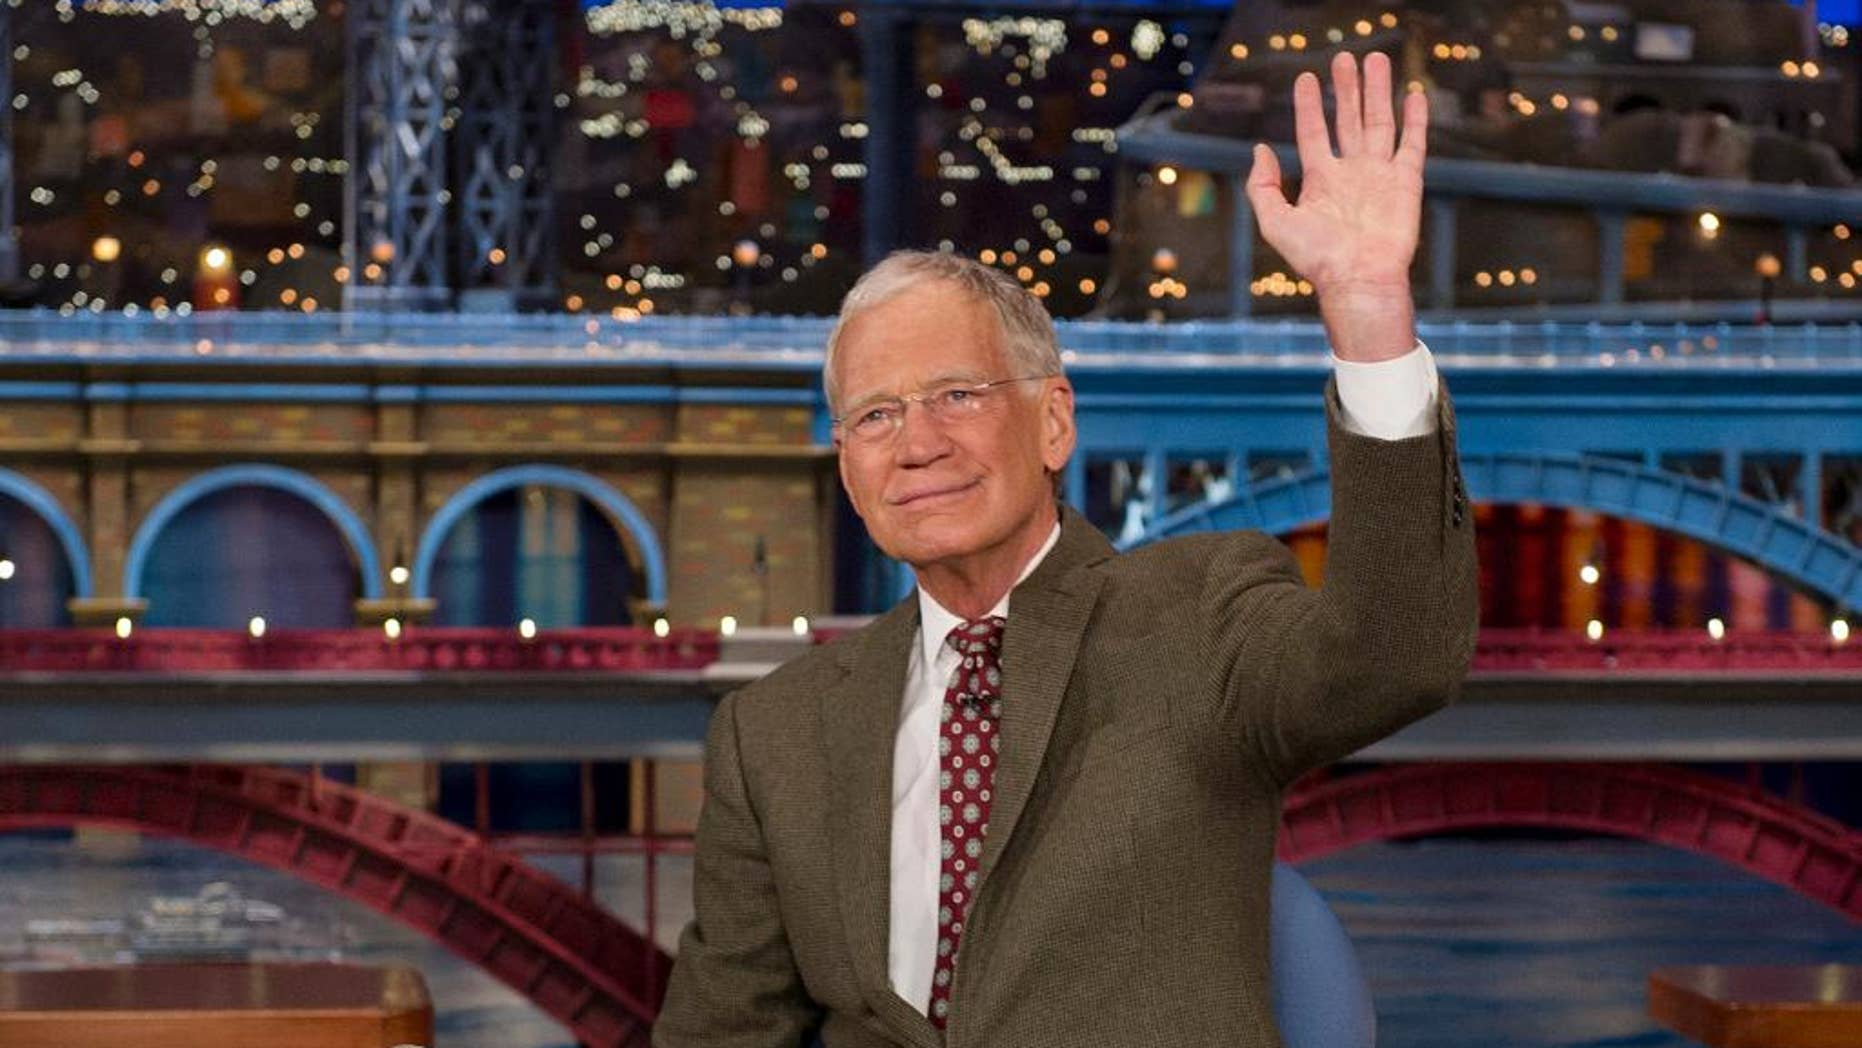 "FILe - In this April 3, 2014 file photo provided by CBS, David Letterman, host of the ""Late Show with David Letterman,"" waves to the audience in after announcing his retirement during a taping in New York. Letterman will host his final show on May 20. (AP Photo/CBS, Jeffrey R. Staab) MANDATORY CREDIT, NO SALES, NO ARCHIVE, FOR NORTH AMERICAN USE ONLY"